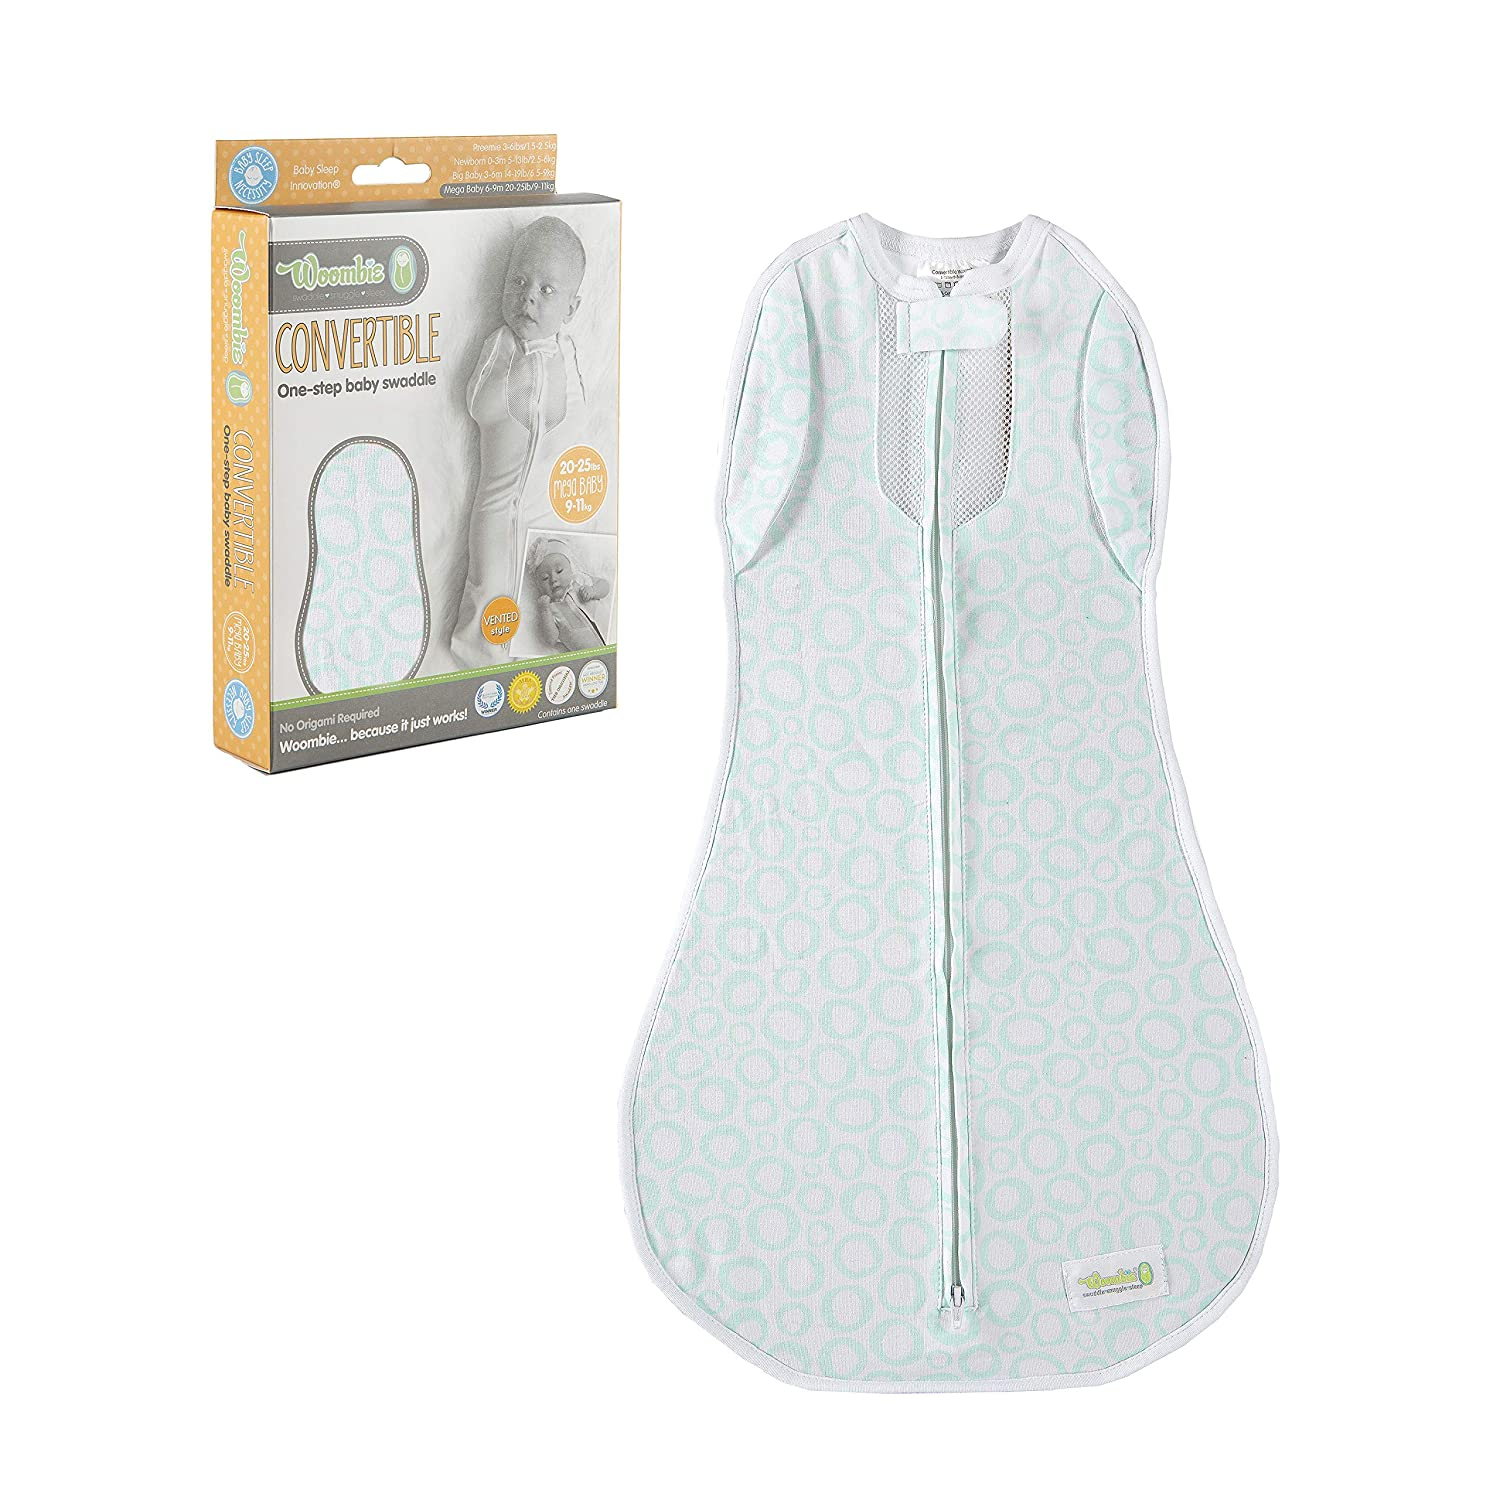 Woombie Vented Convertible Baby Swaddle - Easy to Use Natural Approach to Swaddling - Stretchy but Snug Breathable Fabric - Mint O's - Mega Baby 20-25 lbs